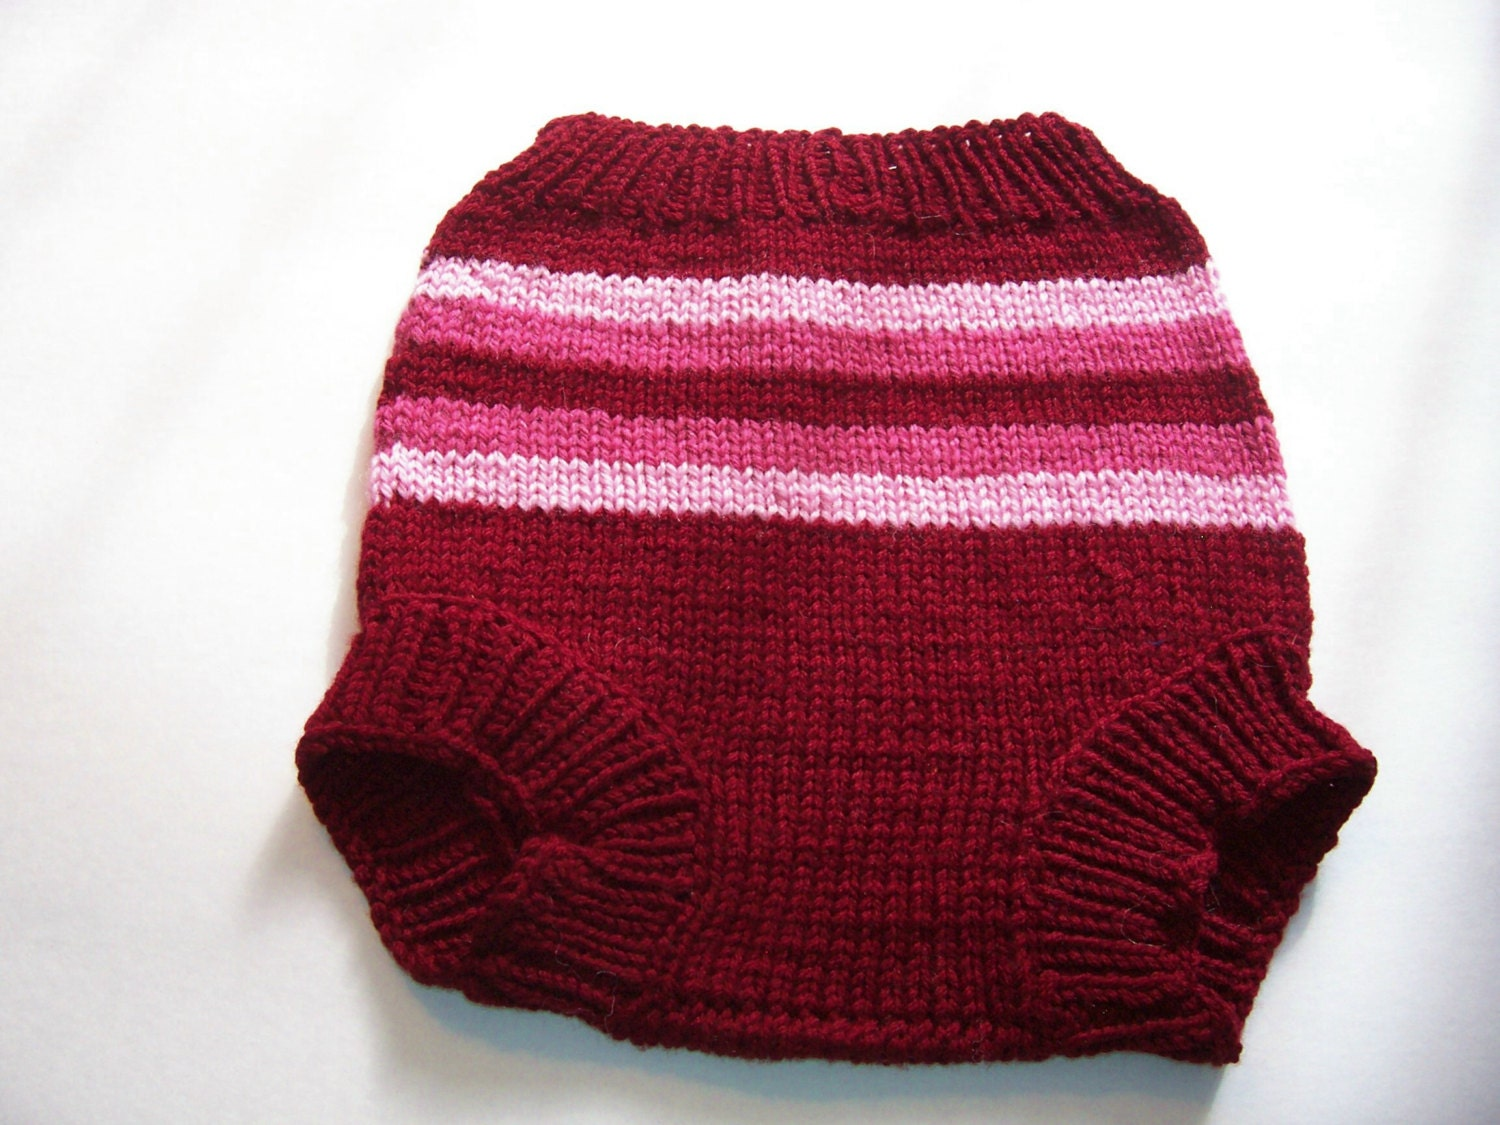 Hand Knitted Wool Diaper Cover Knit Cloth by SrechaHandknits